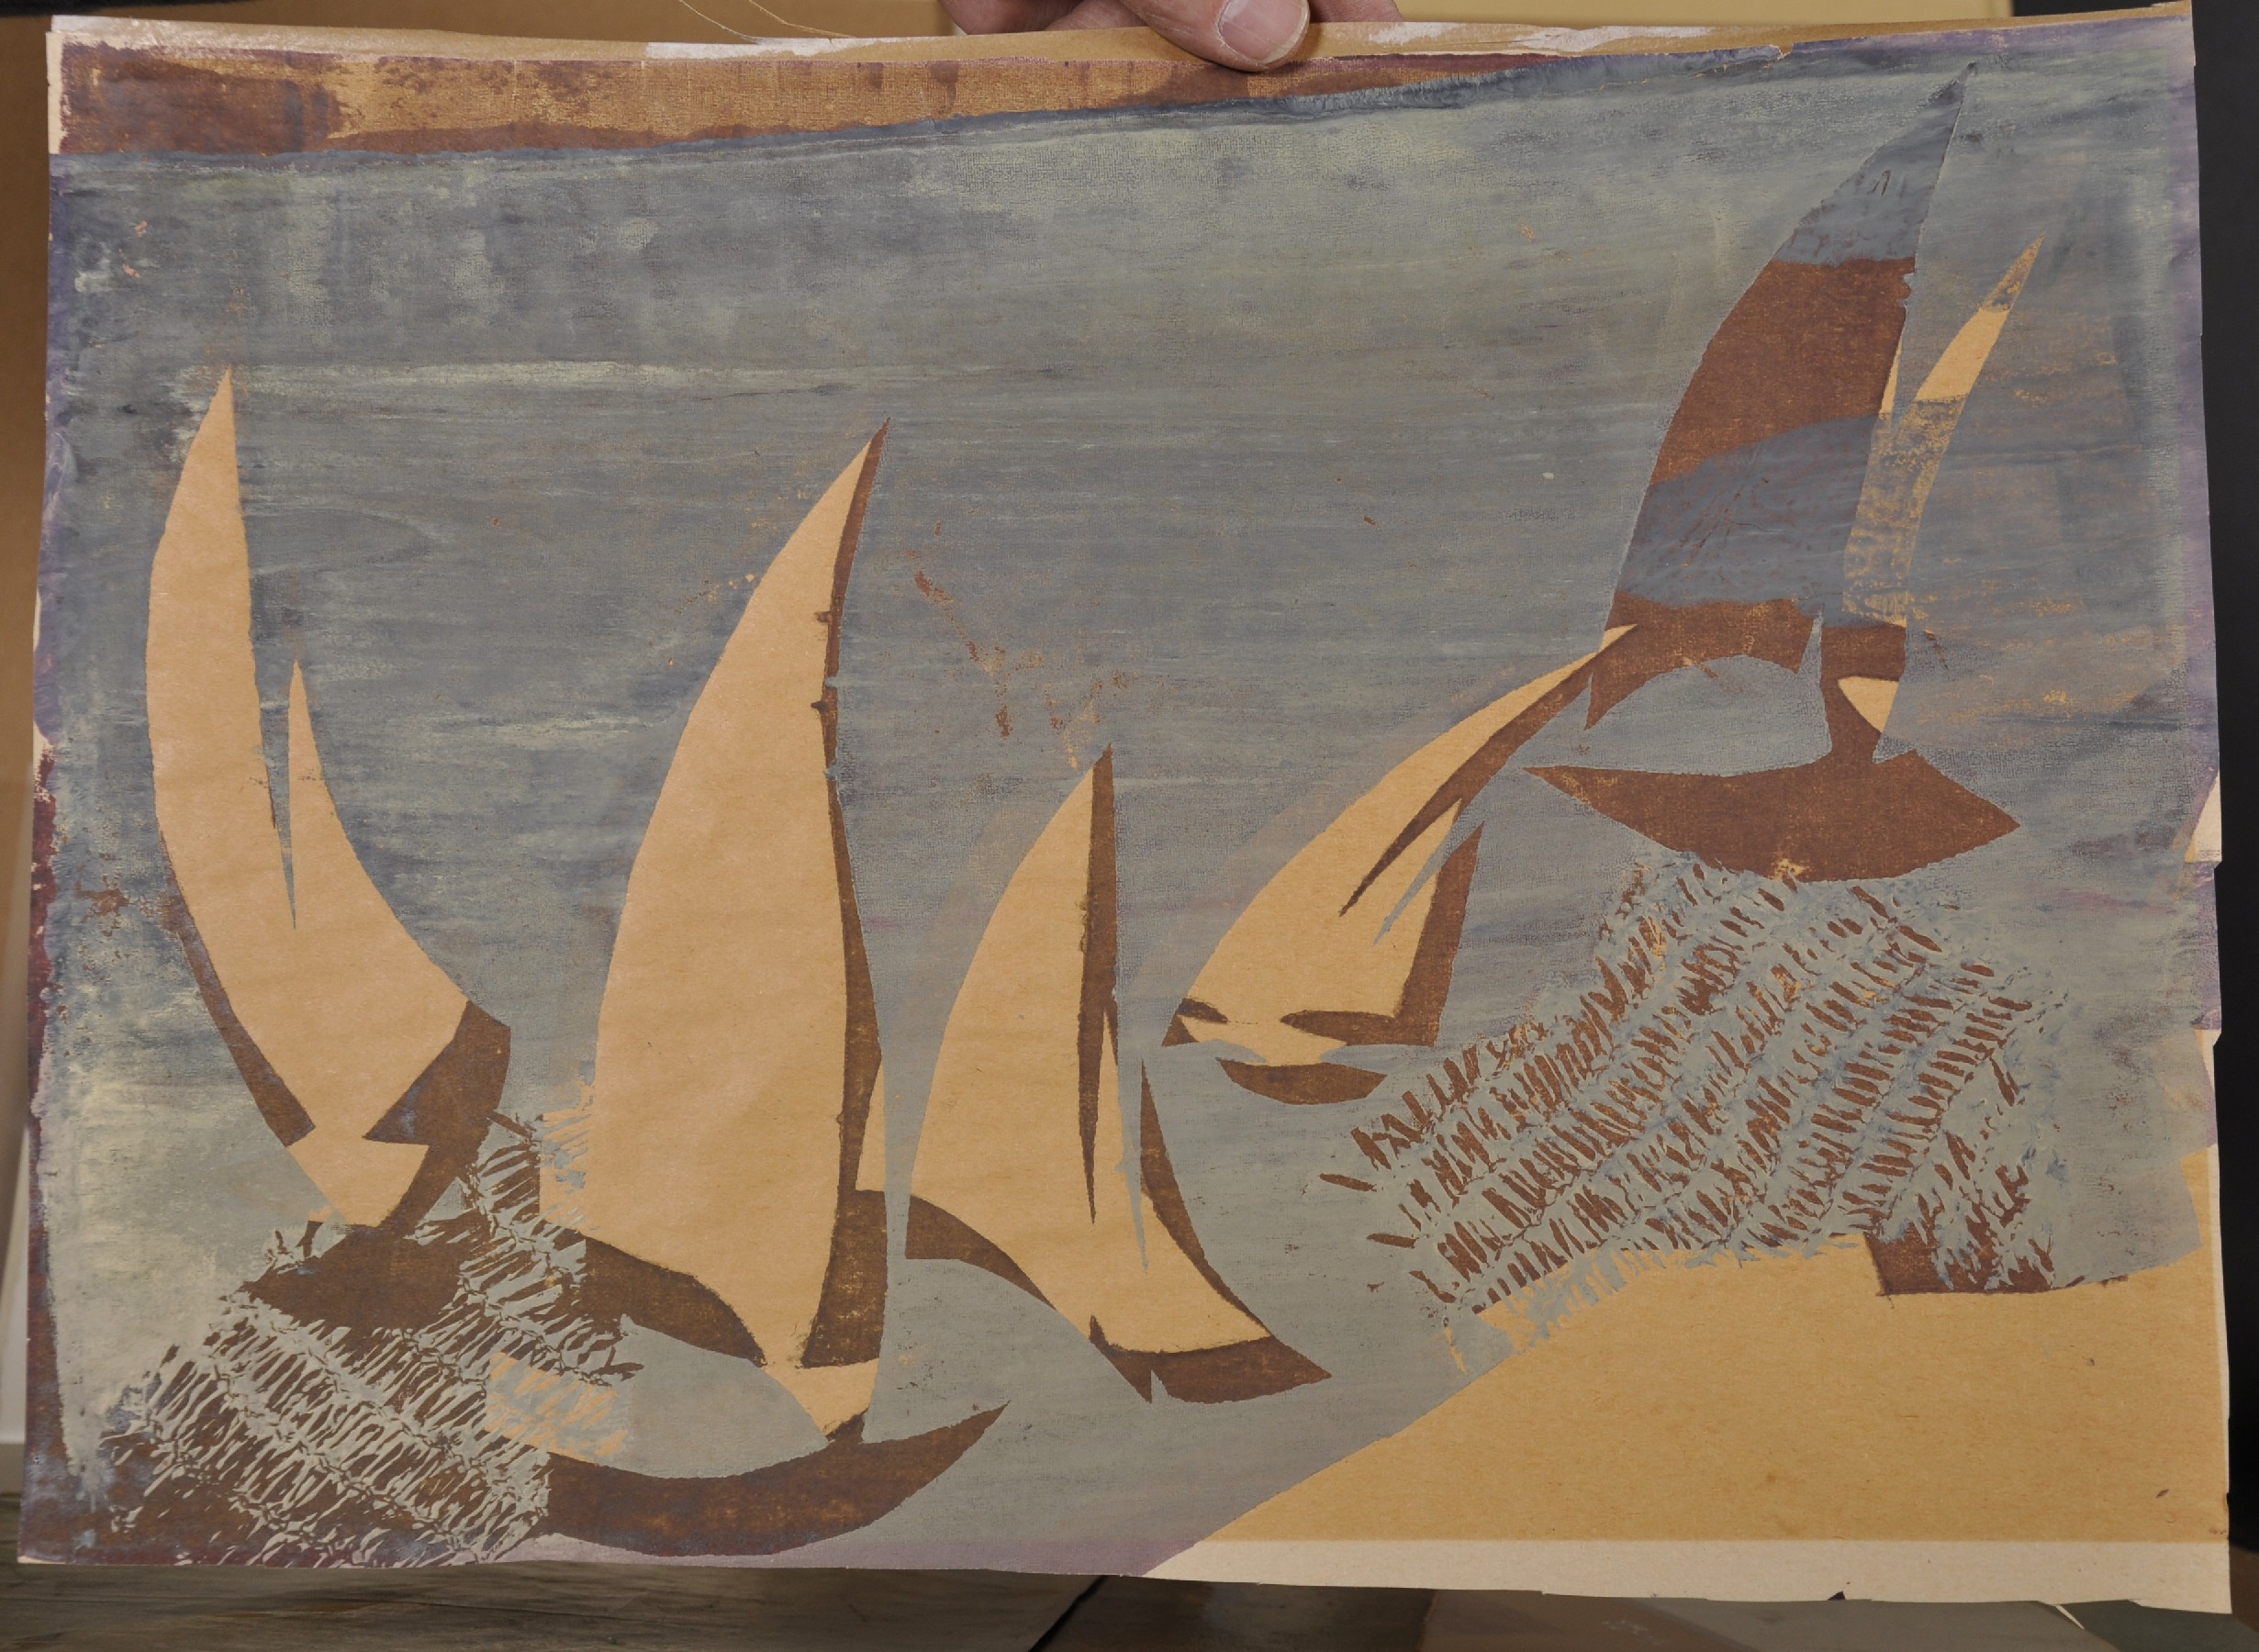 """Early 20th Century European School. Sailing Boats, Woodblock, Unframed, 12"""" x 16.75"""", and another by - Image 2 of 3"""